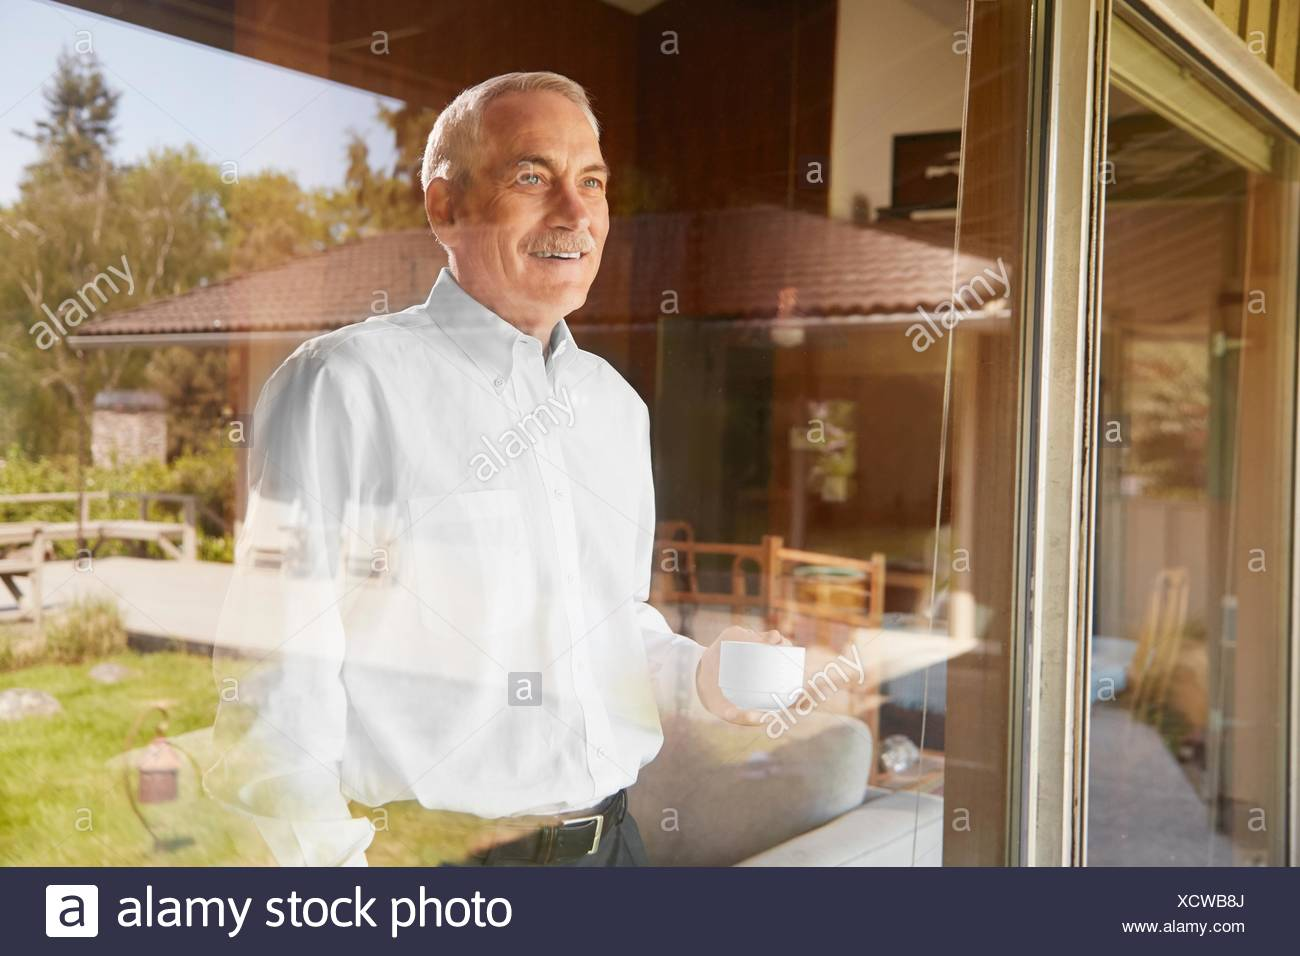 Senior man at home, drinking coffee, looking out of window - Stock Image